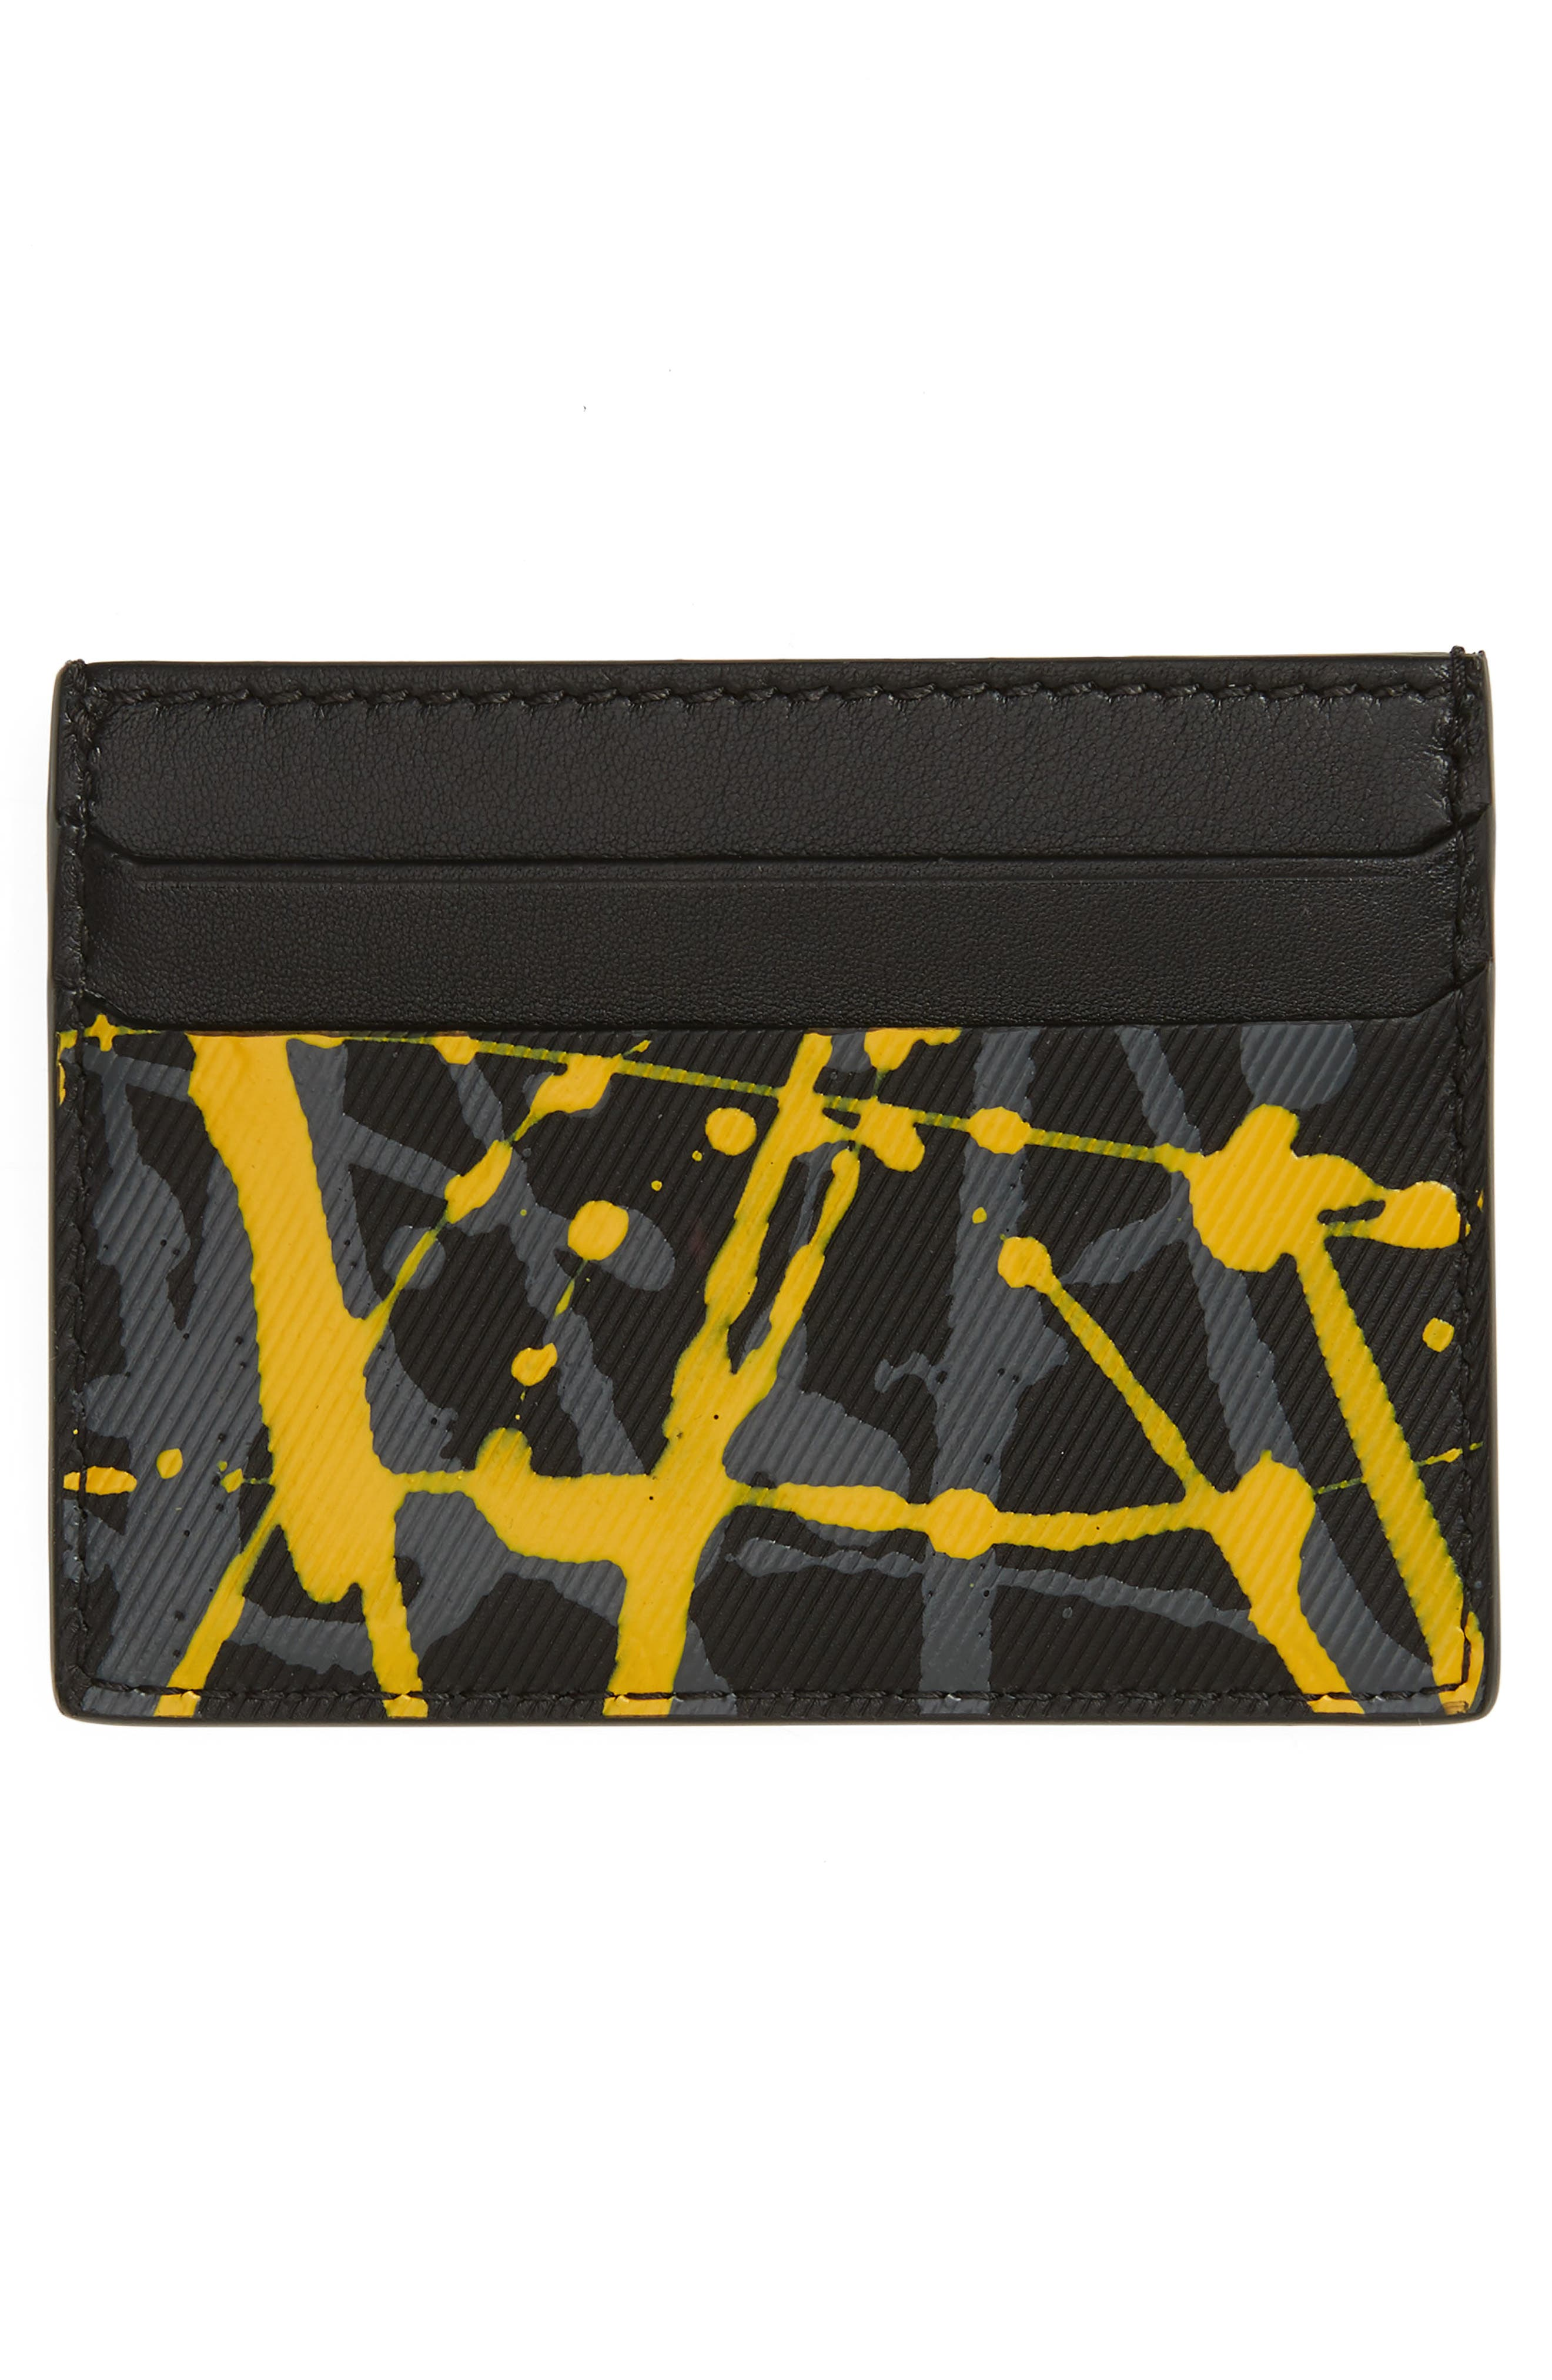 BURBERRY,                             Trench Splash Leather Card Case,                             Alternate thumbnail 2, color,                             001